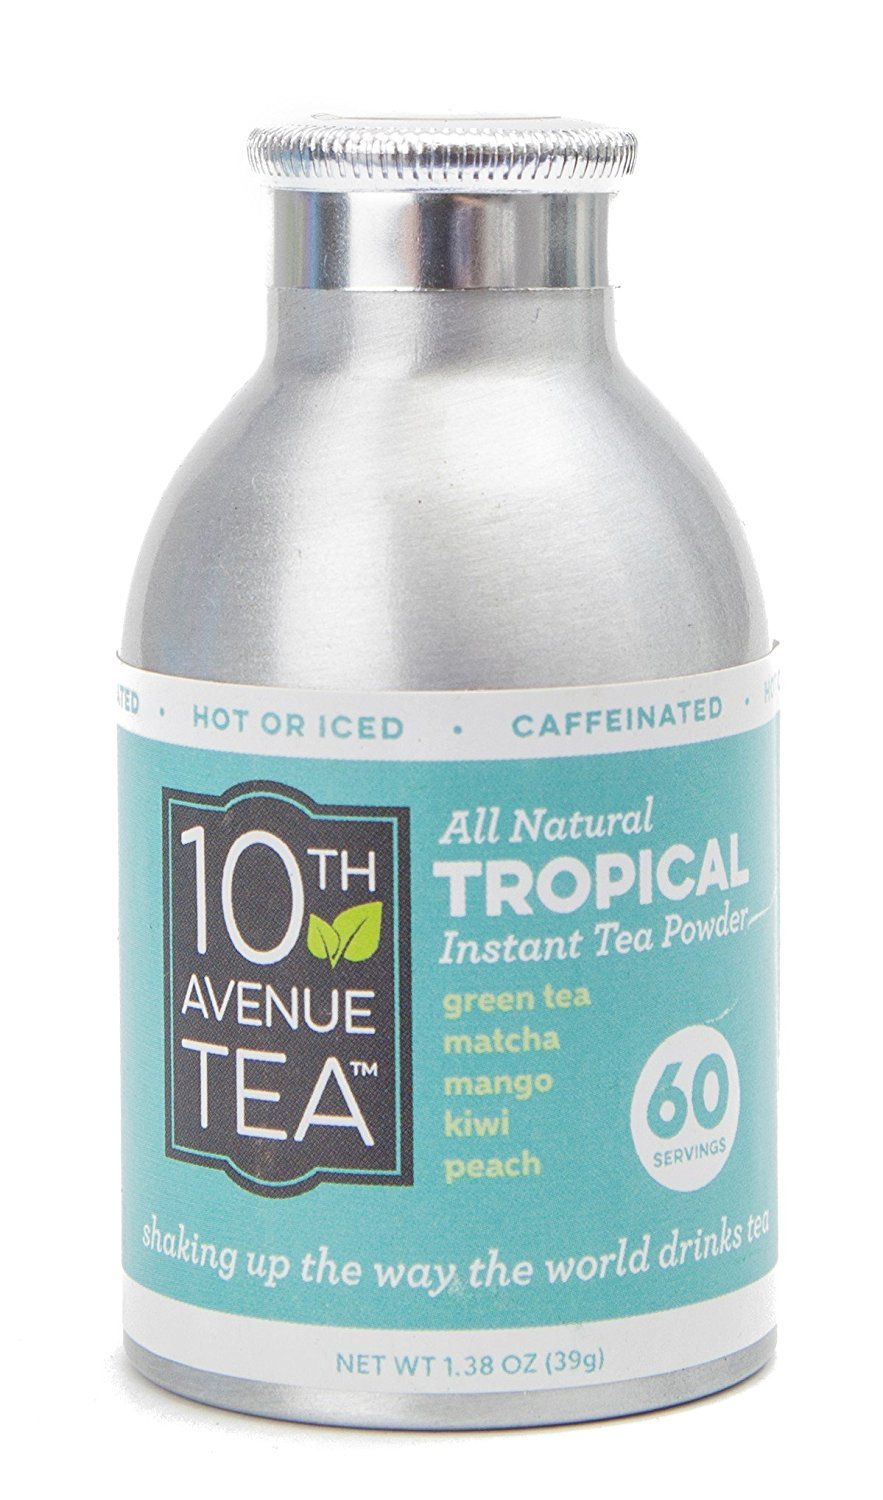 10th Avenue Tea Tropical Tea Powder - 60 Servings - All Natural - Hot or Iced Tea